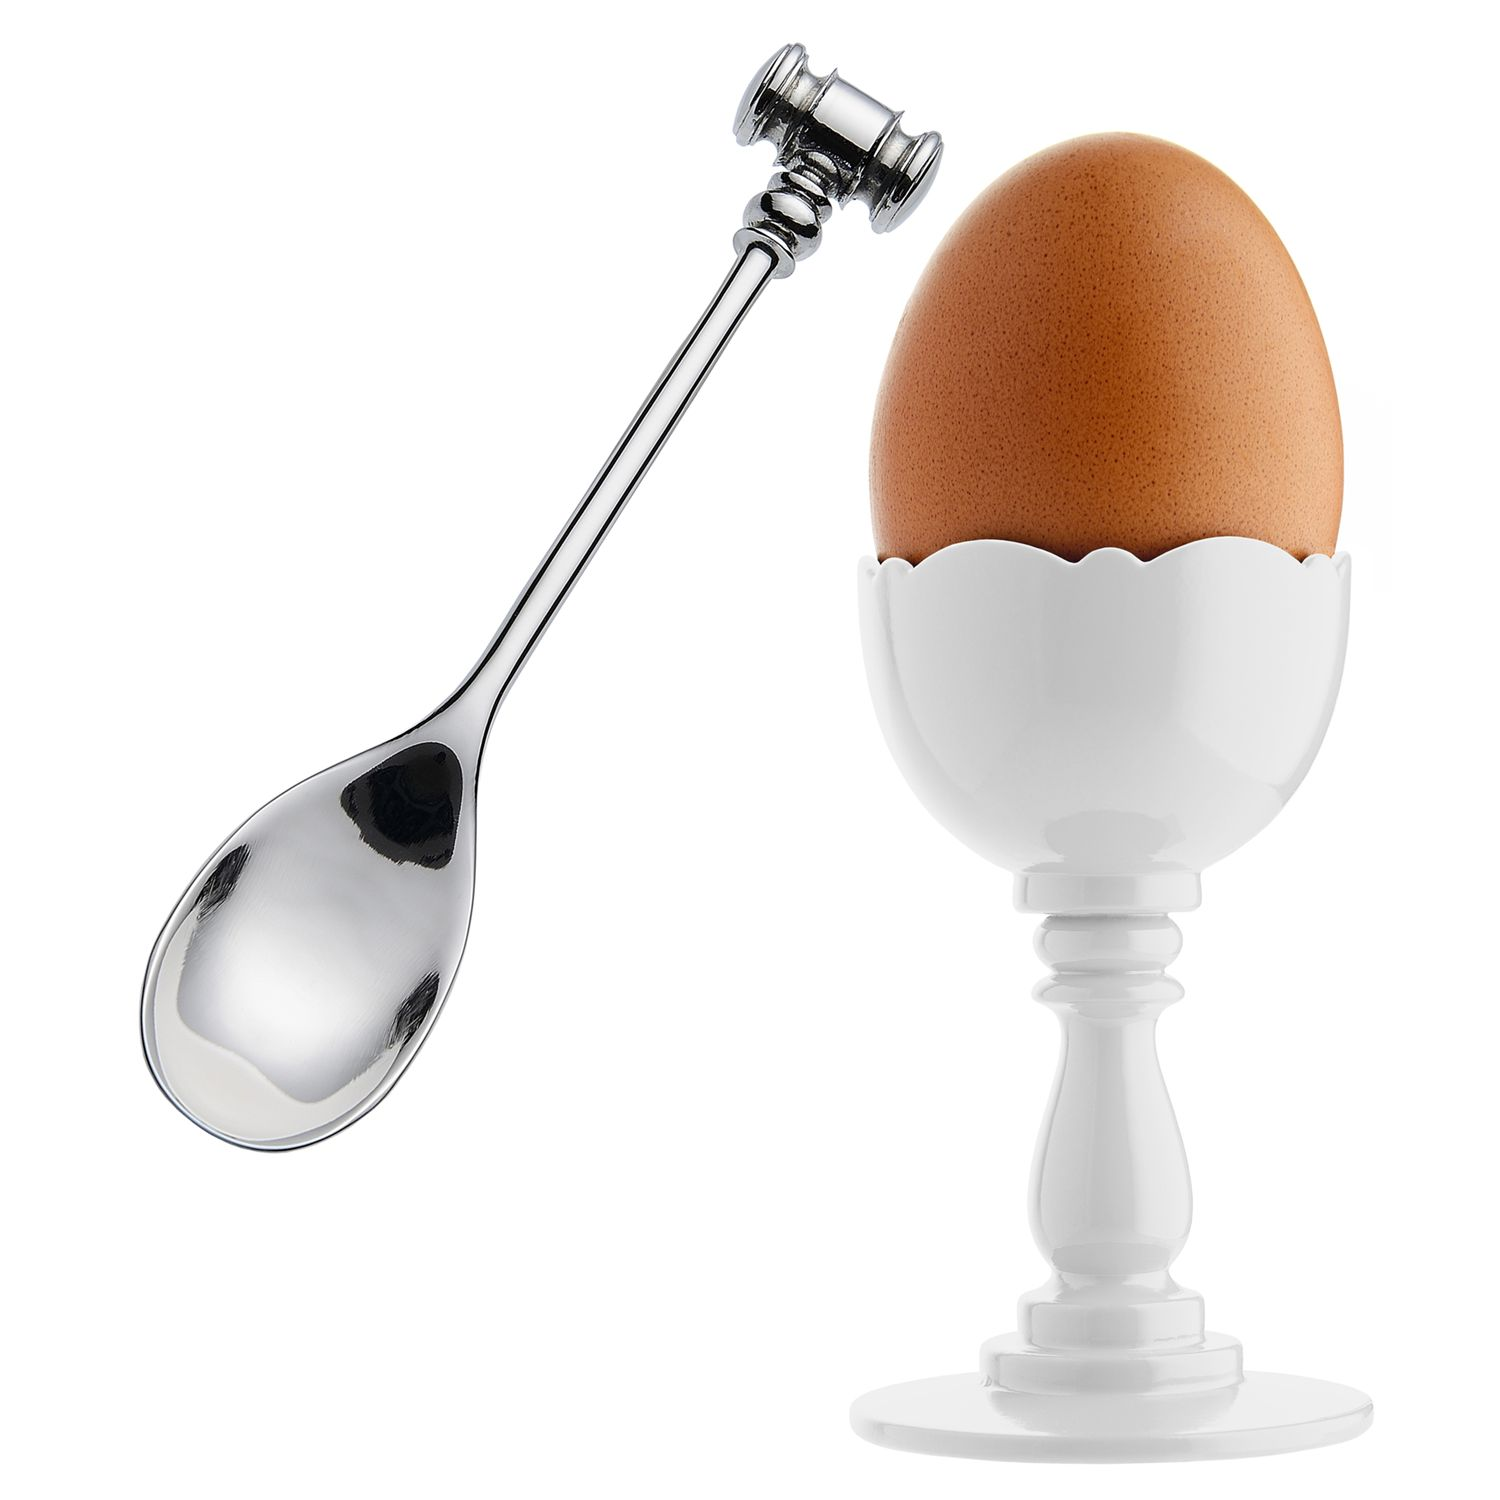 Alessi Alessi Dressed Egg Cup and Spoon, White